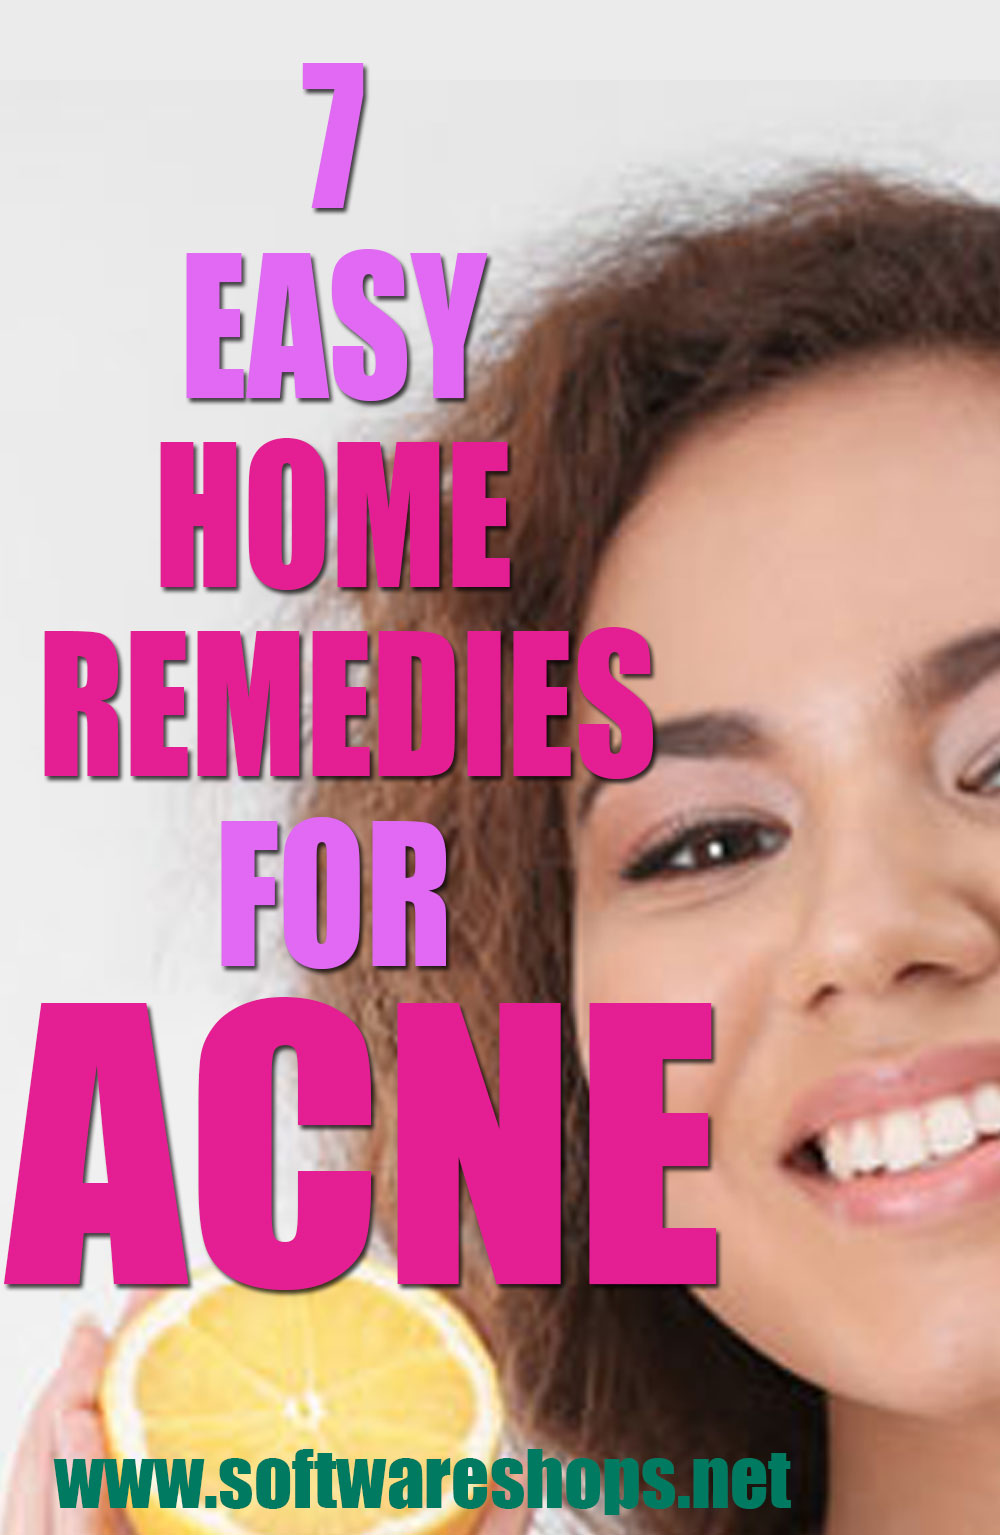 easy home remedies for acne